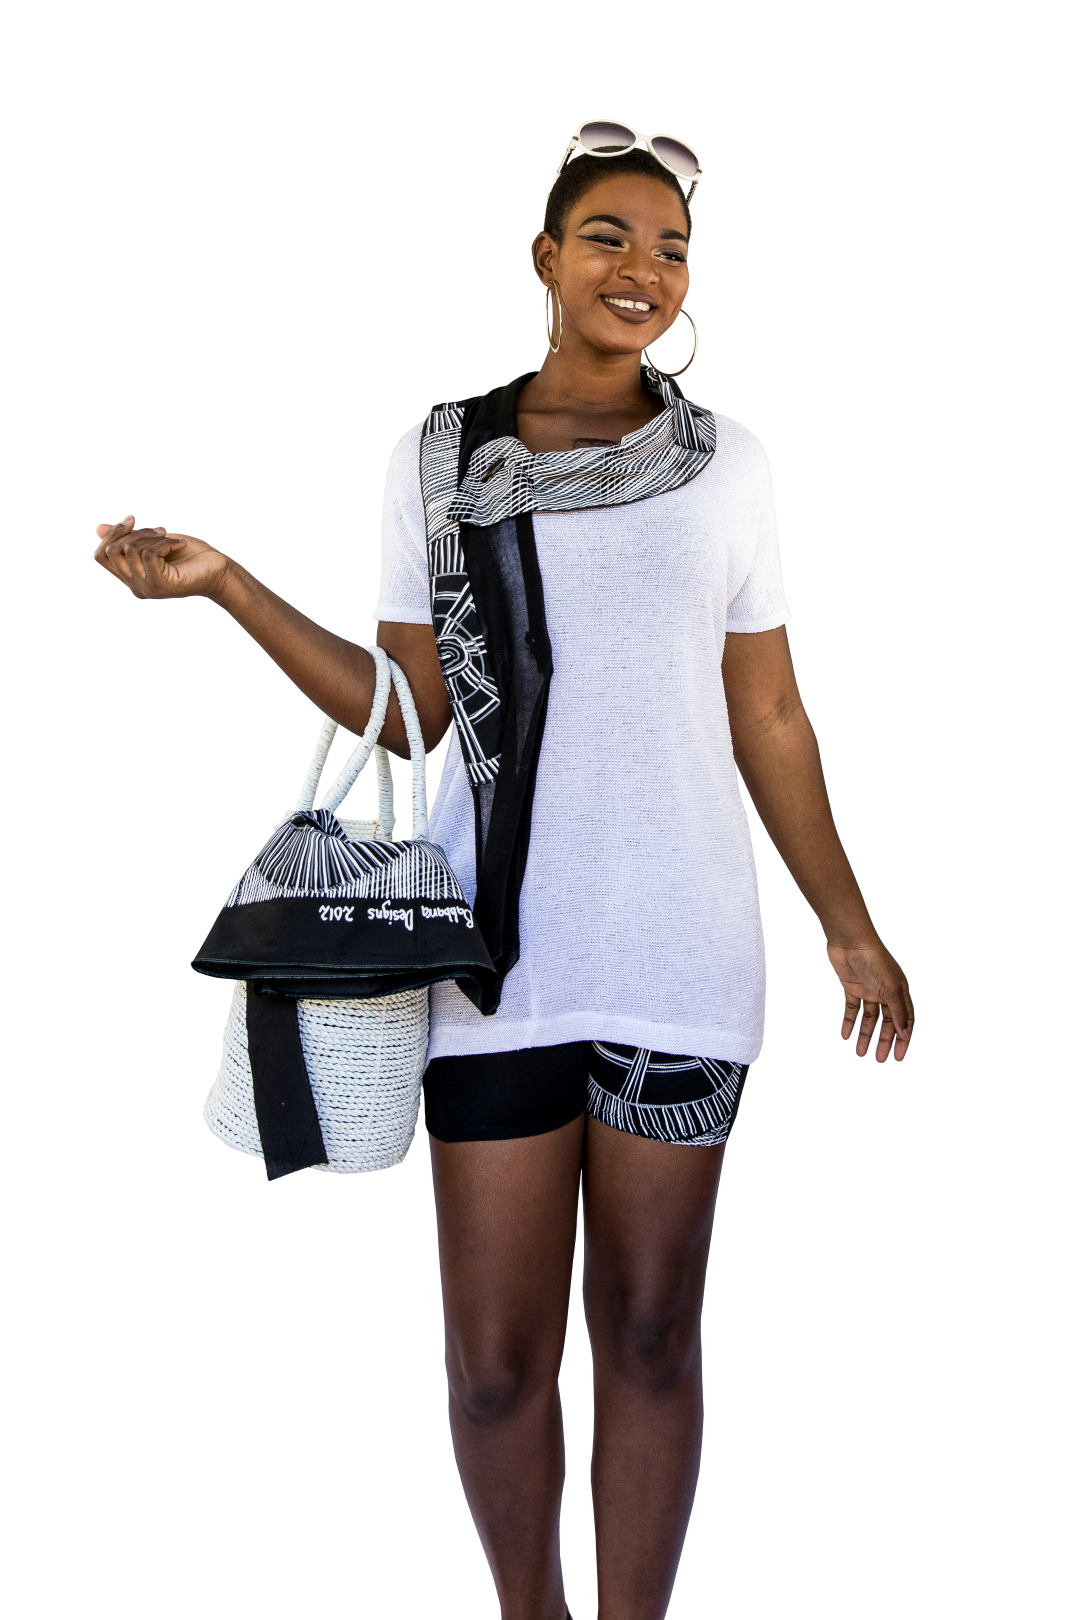 sally anne lyons creative clothing solutions for women 2019_051_transparent.png